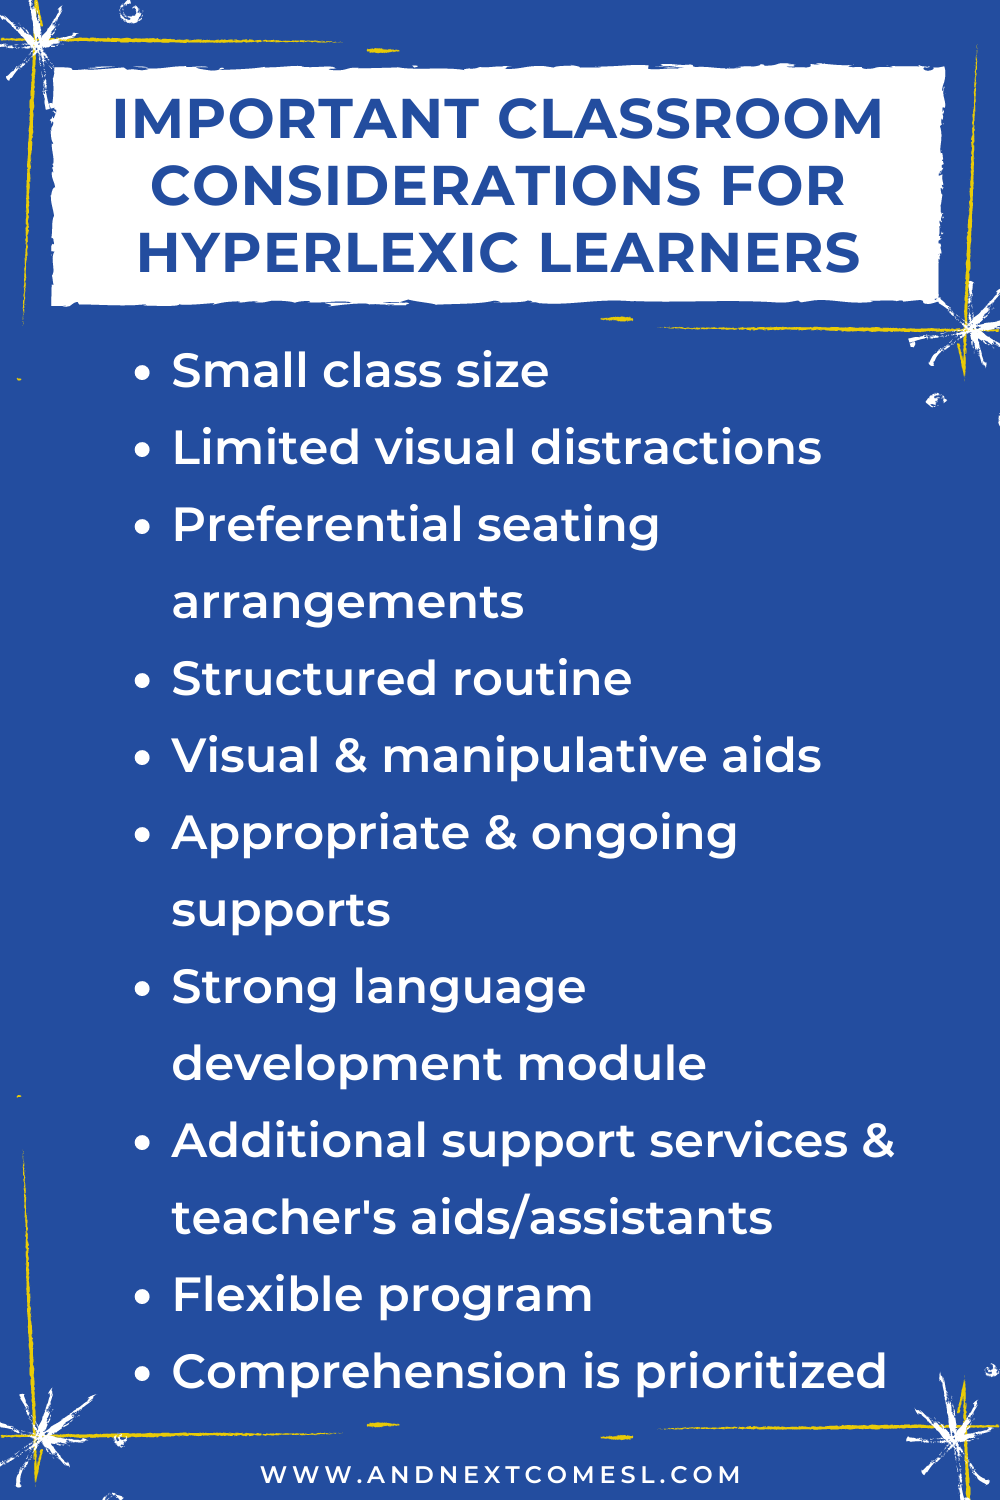 A list of things to consider when it comes to school for hyperlexic learners